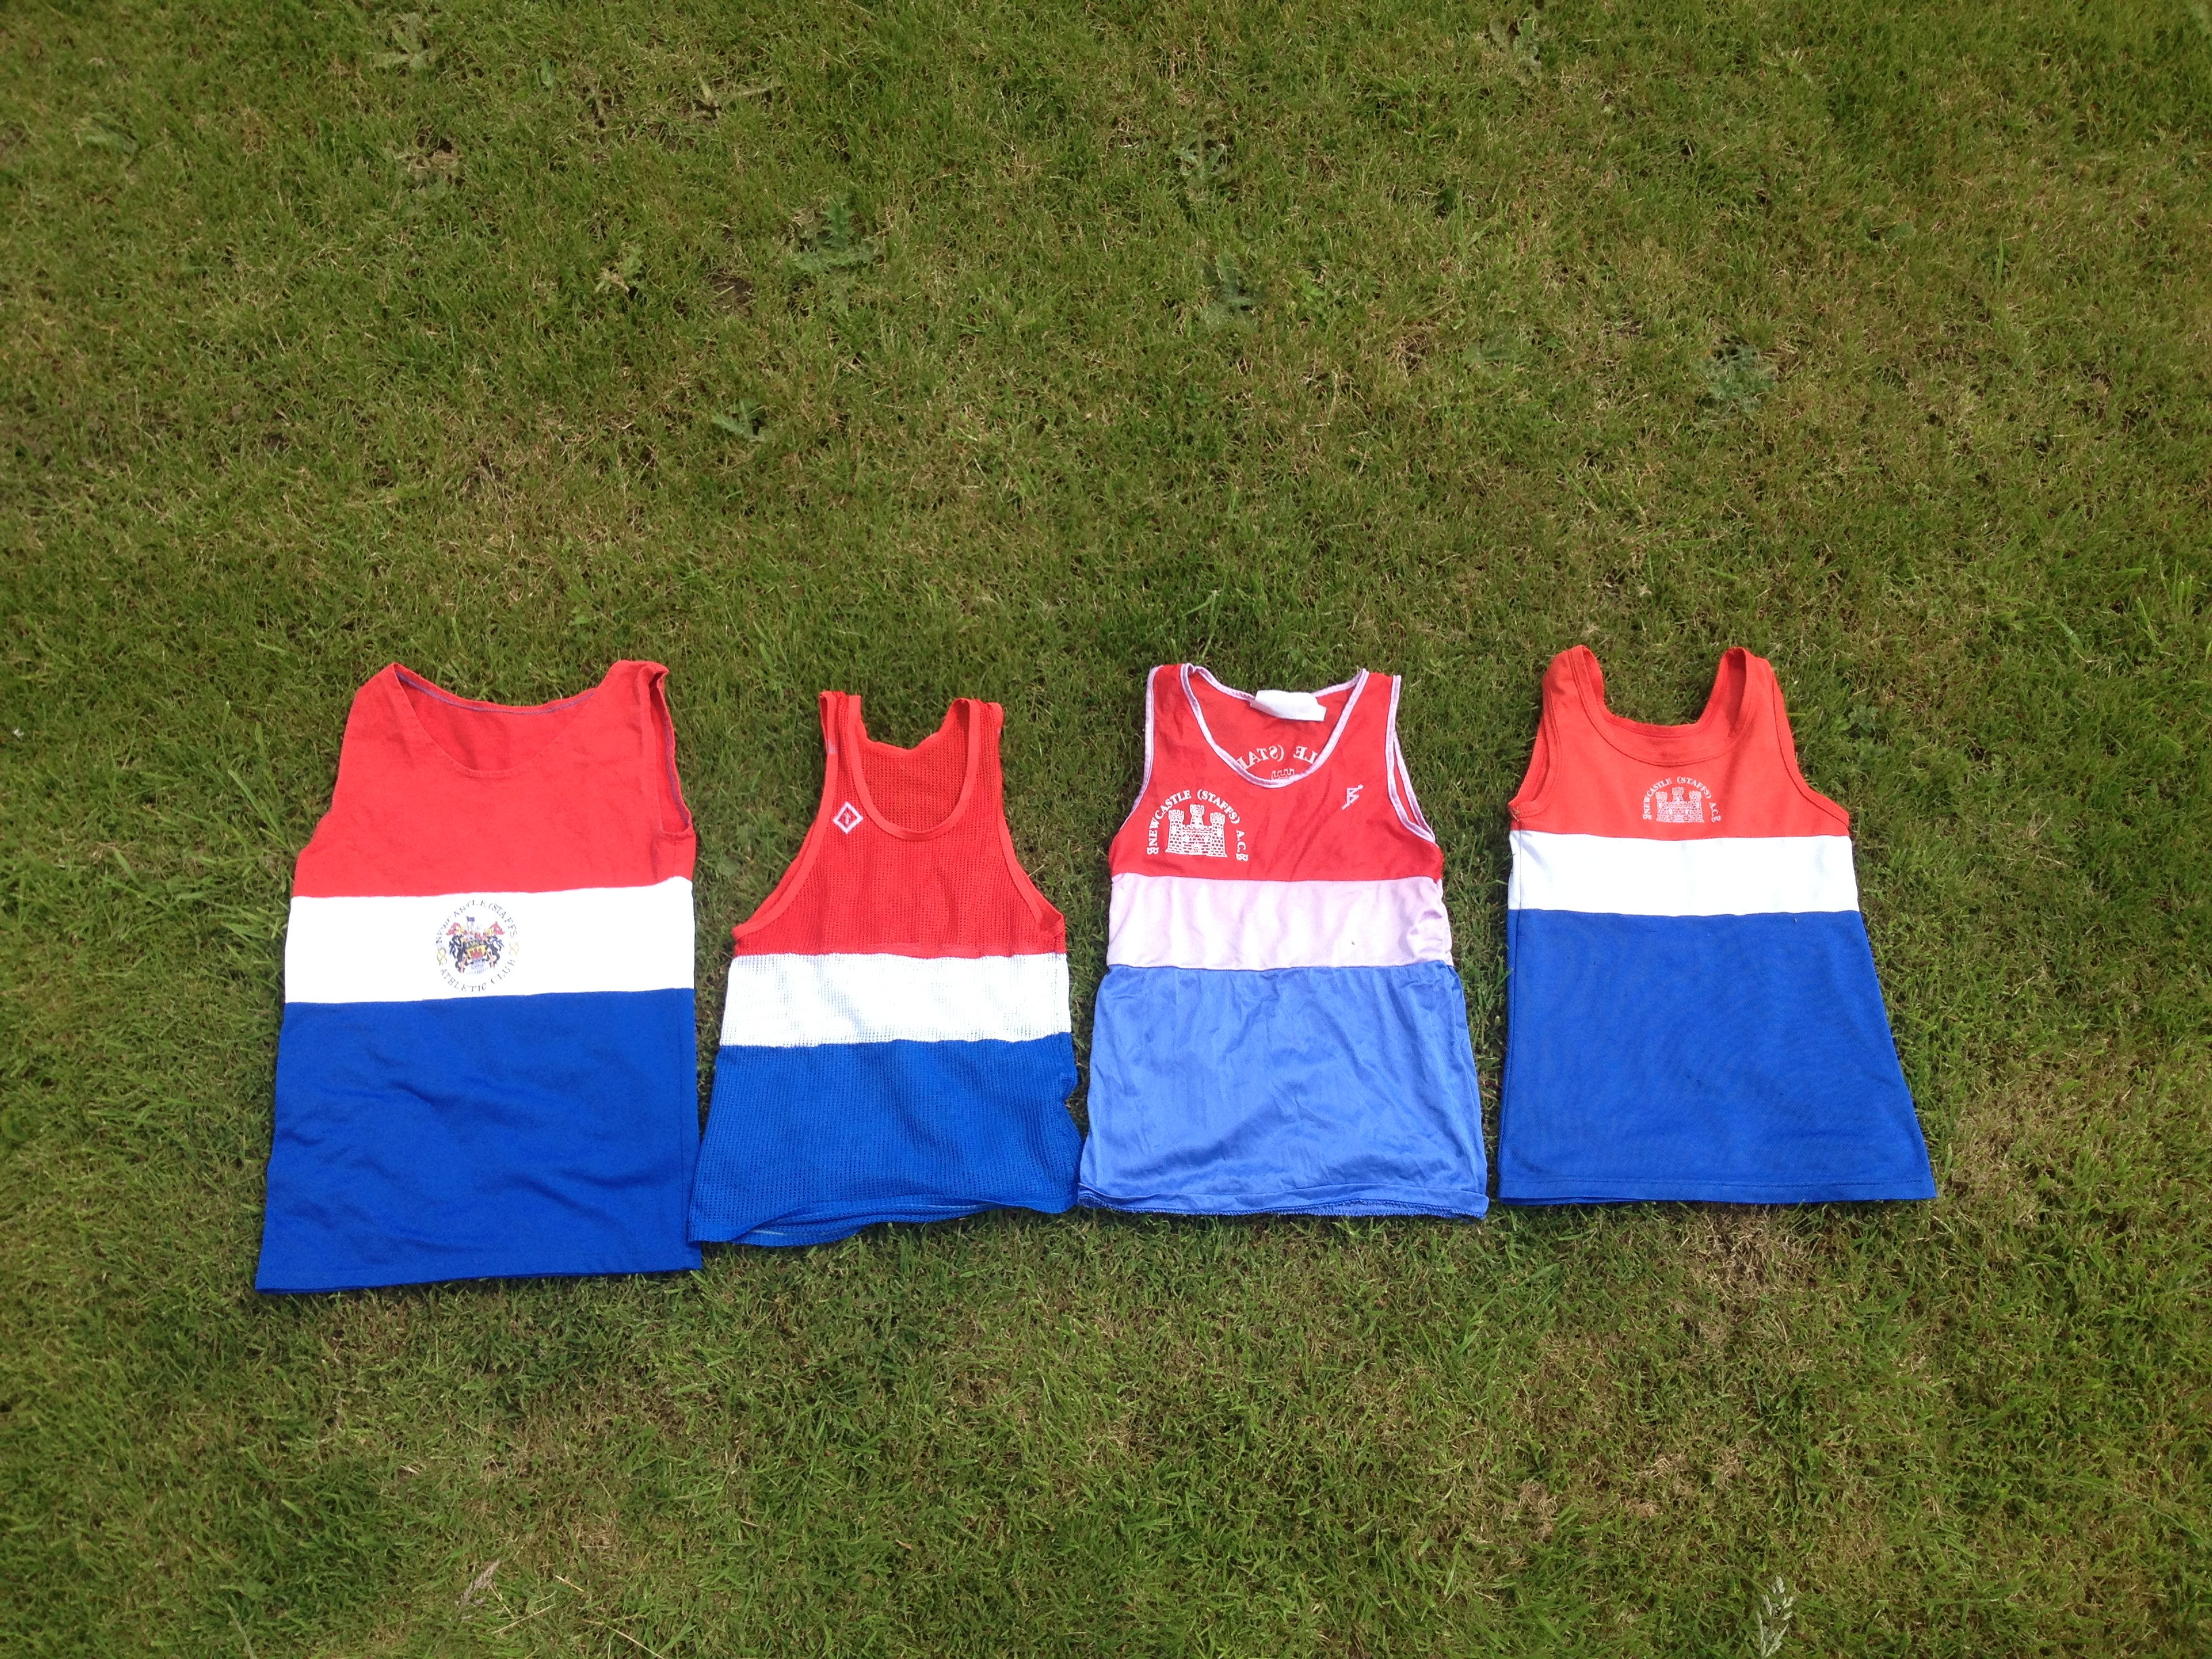 Can you help? Club Vests